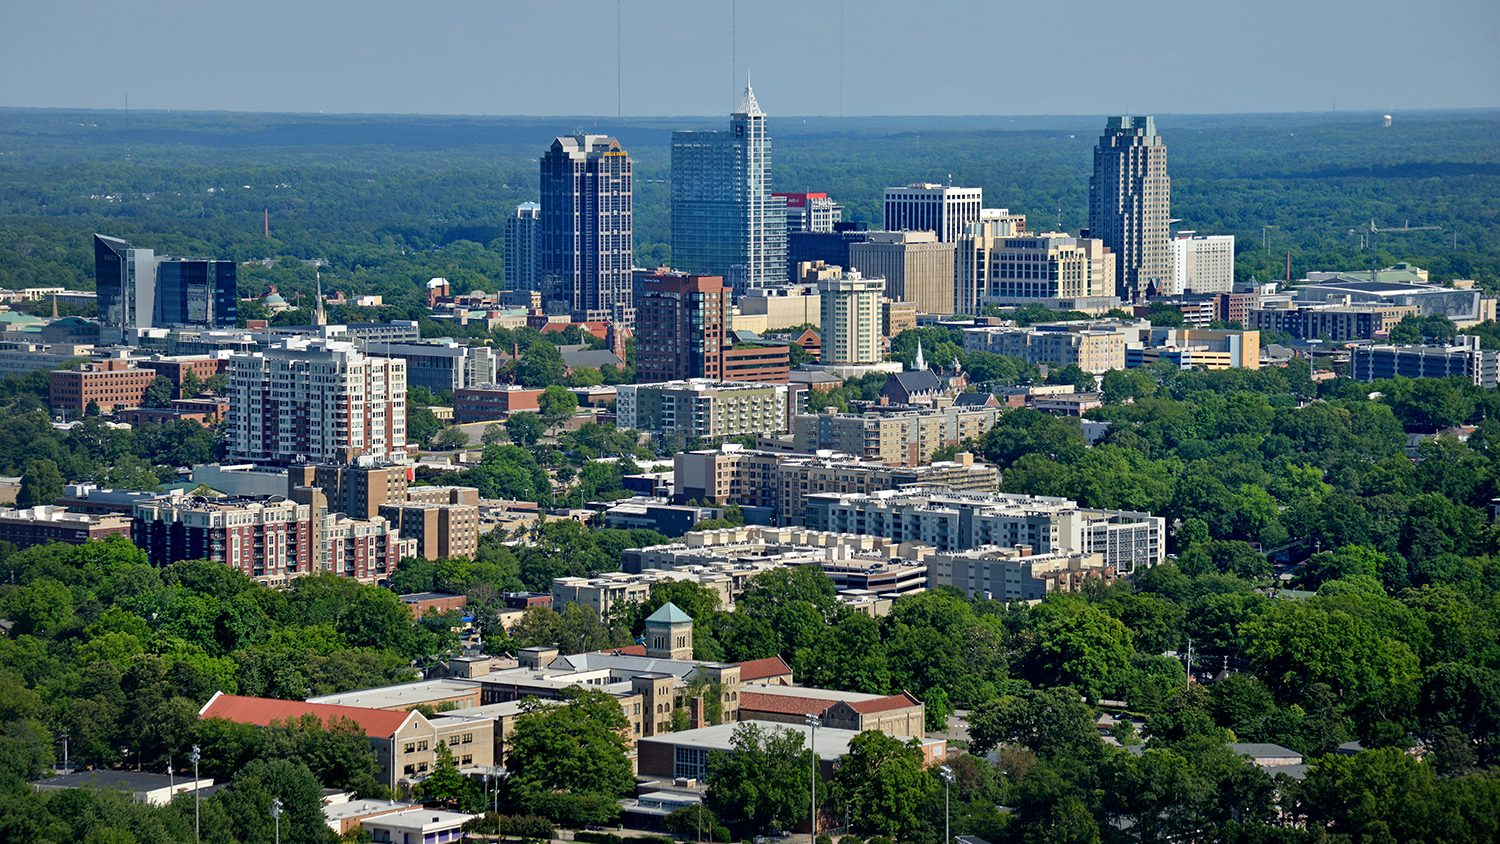 Aerial view of downtown Raleigh.